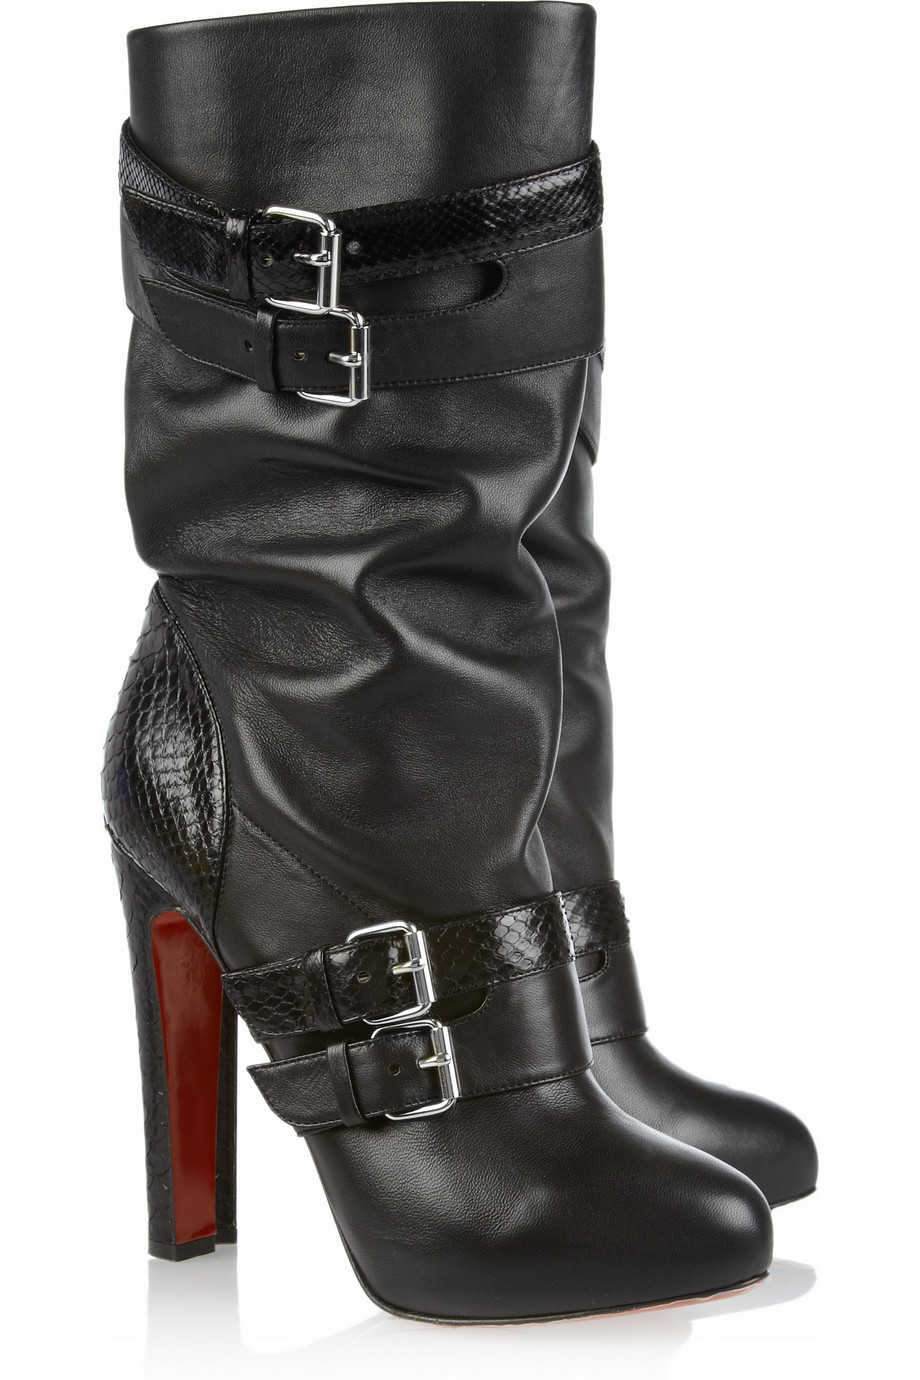 303c503fc74e Shoeniverse  Loubi Bike pull on heeled biker boots by Christian ...